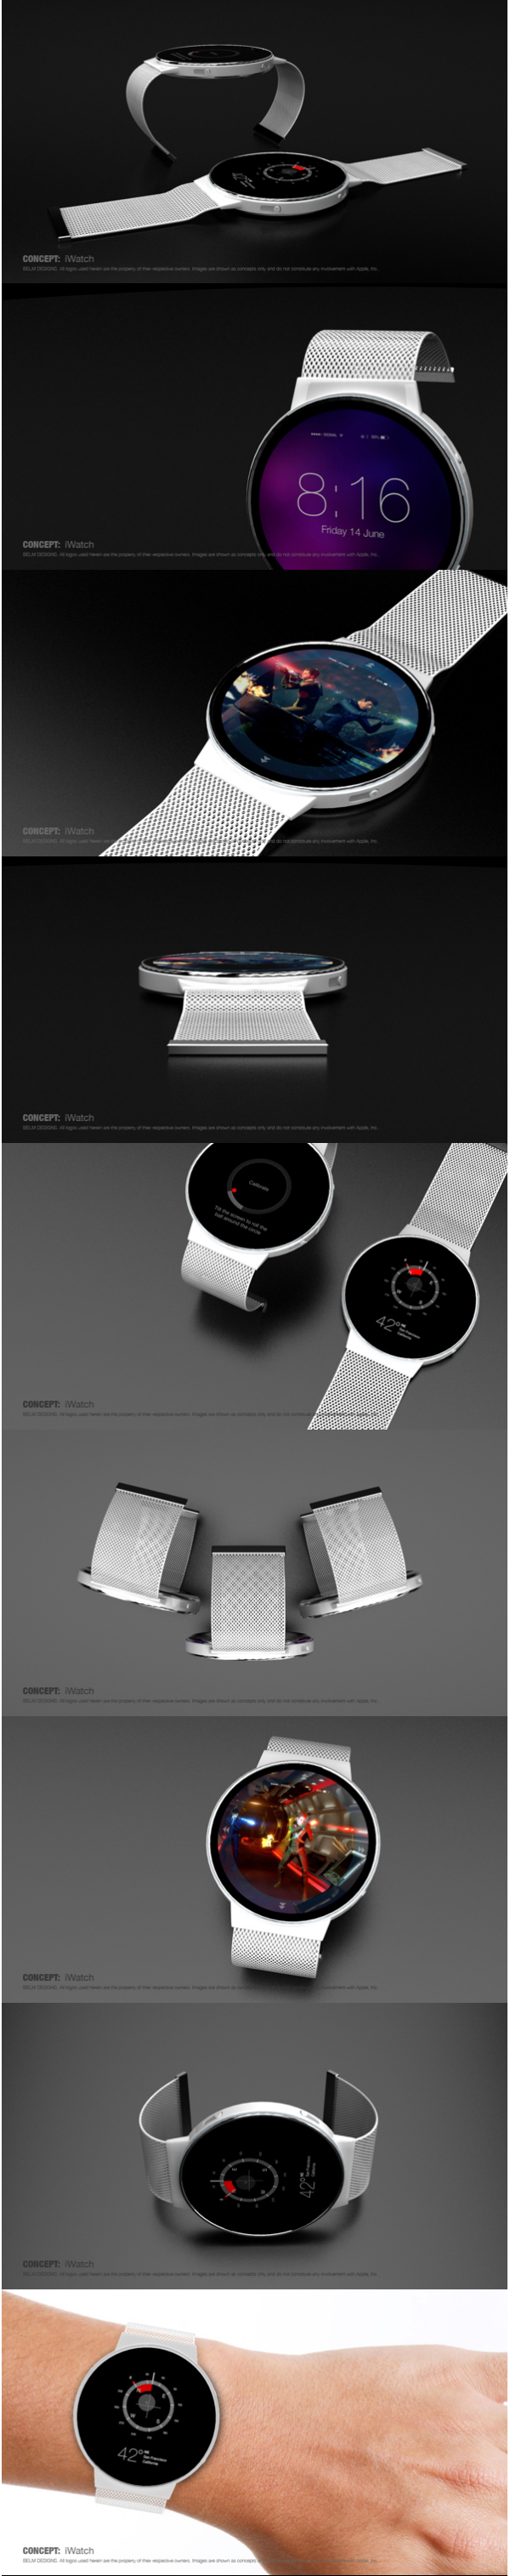 apple_iwatch_photos